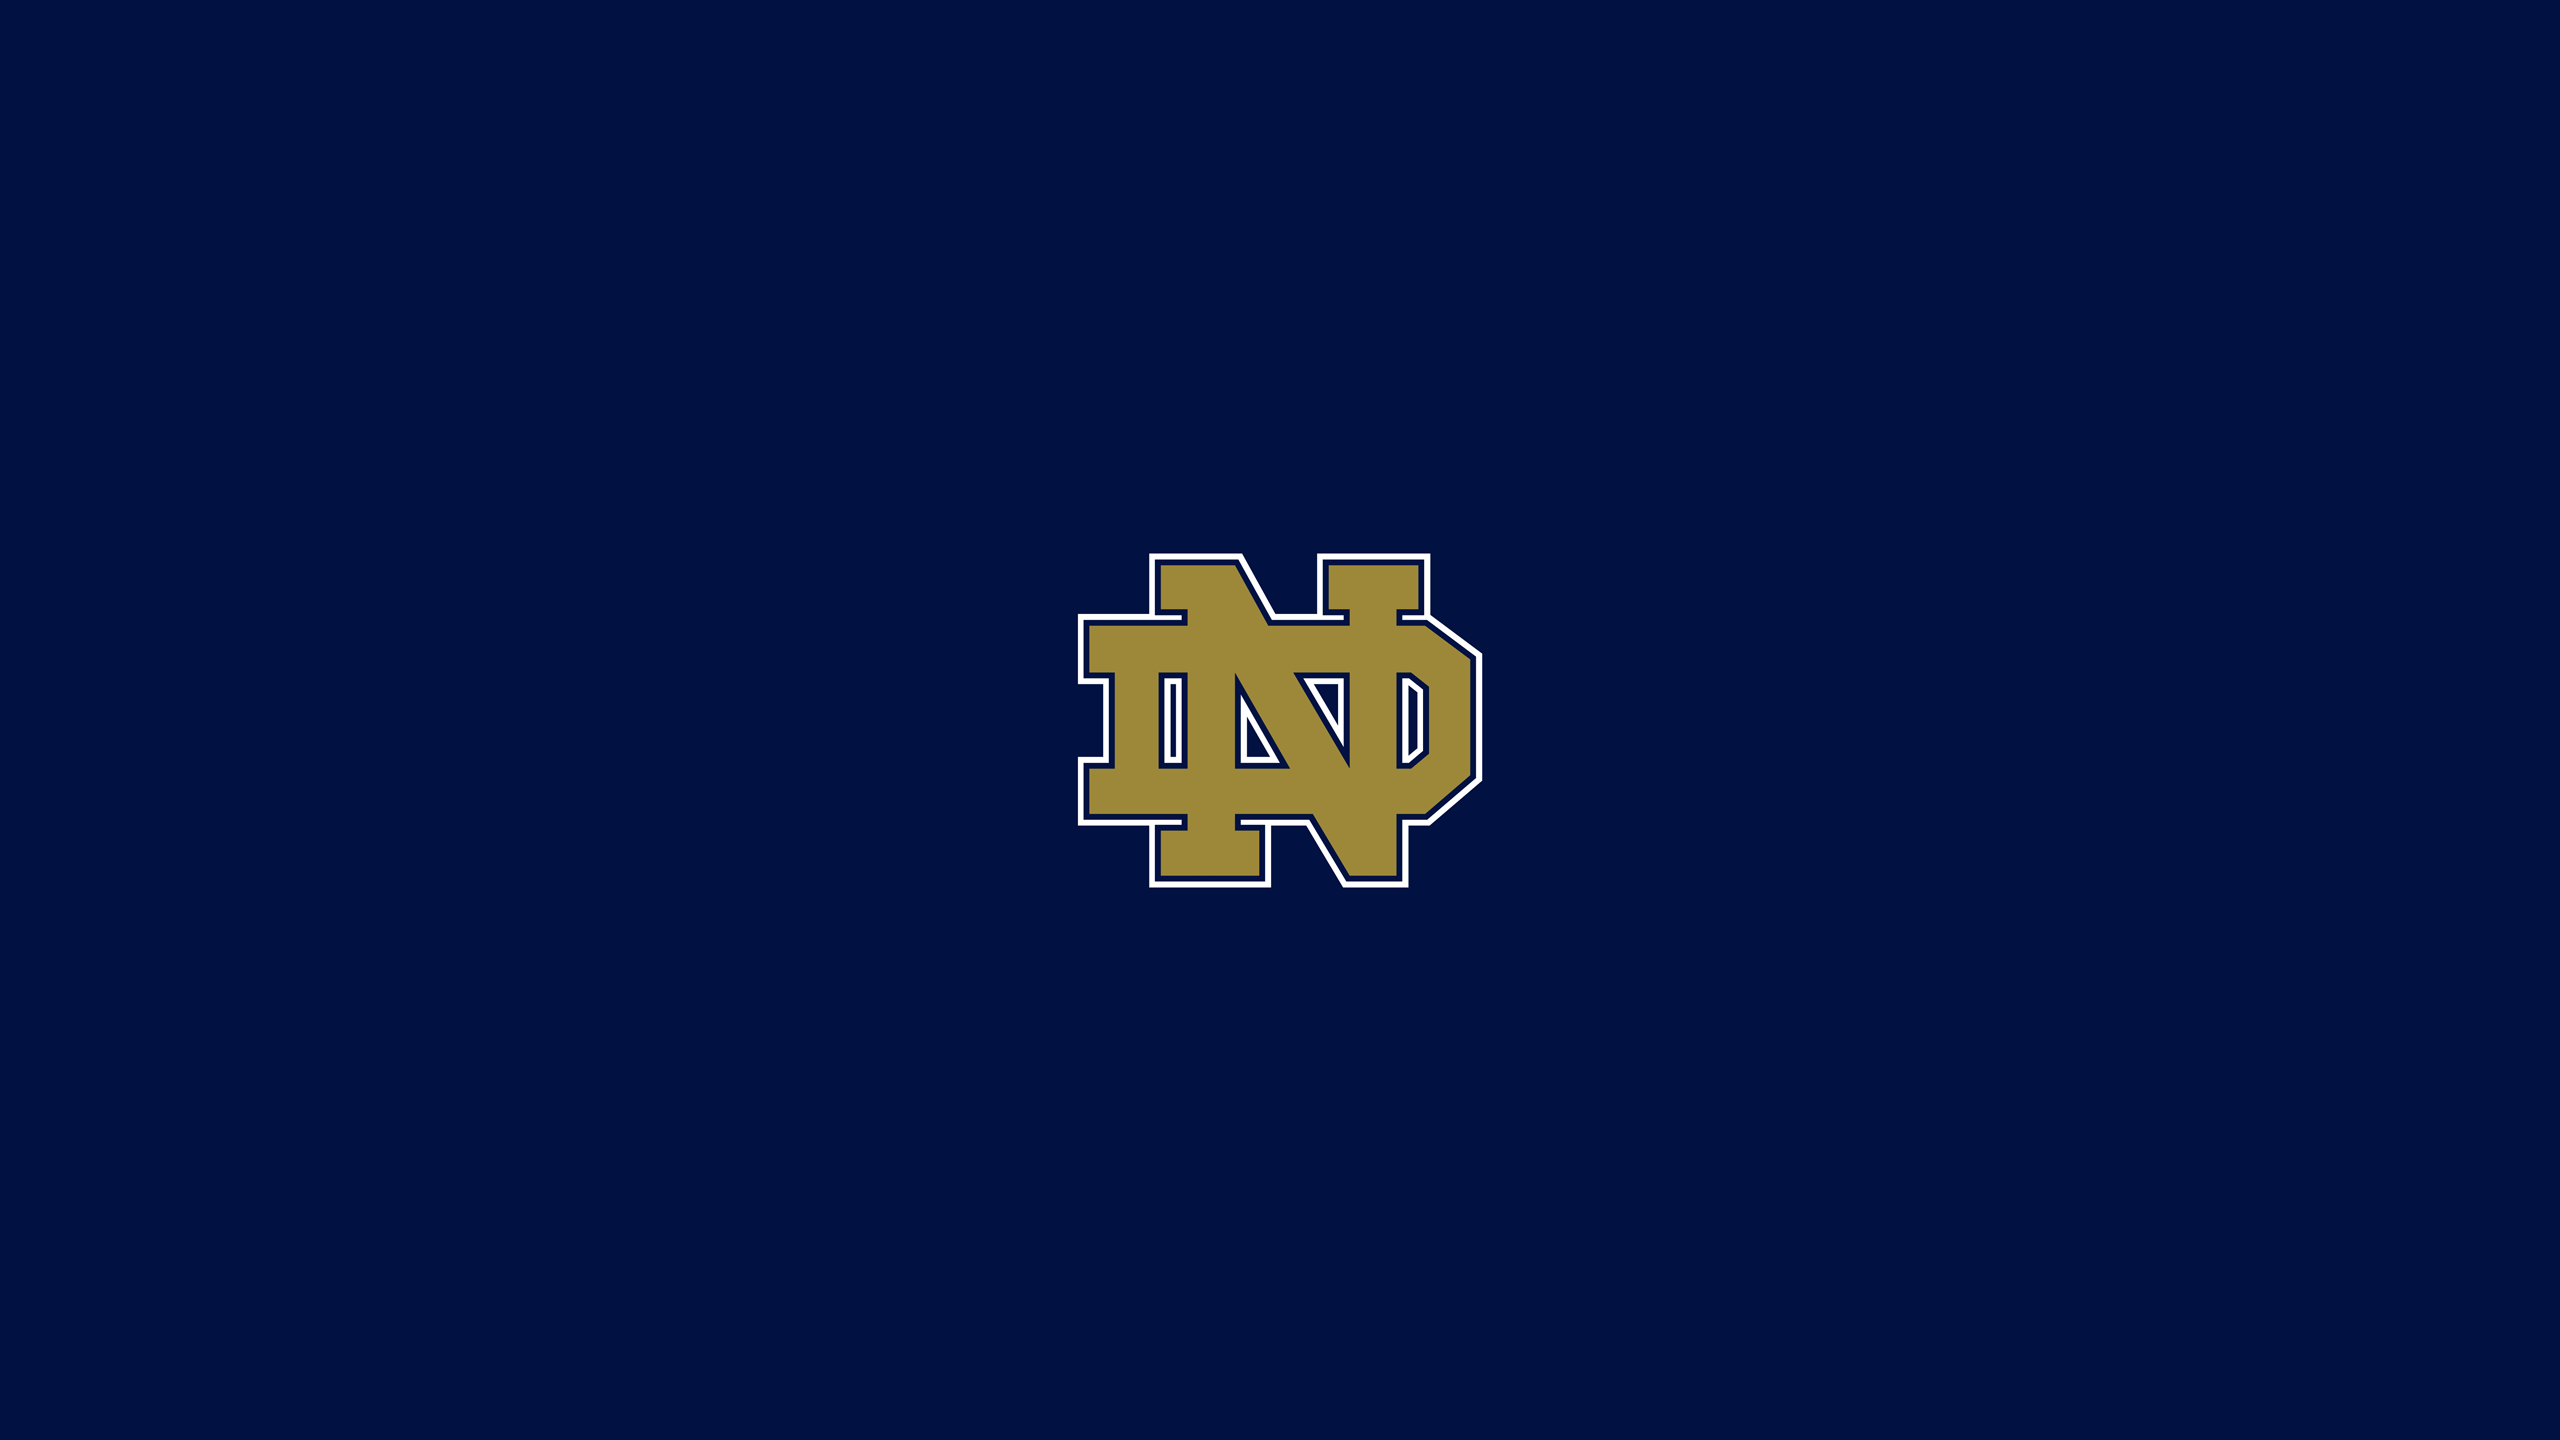 Notre dame wallpaper wallpapersafari for Notre dame fighting irish coloring pages